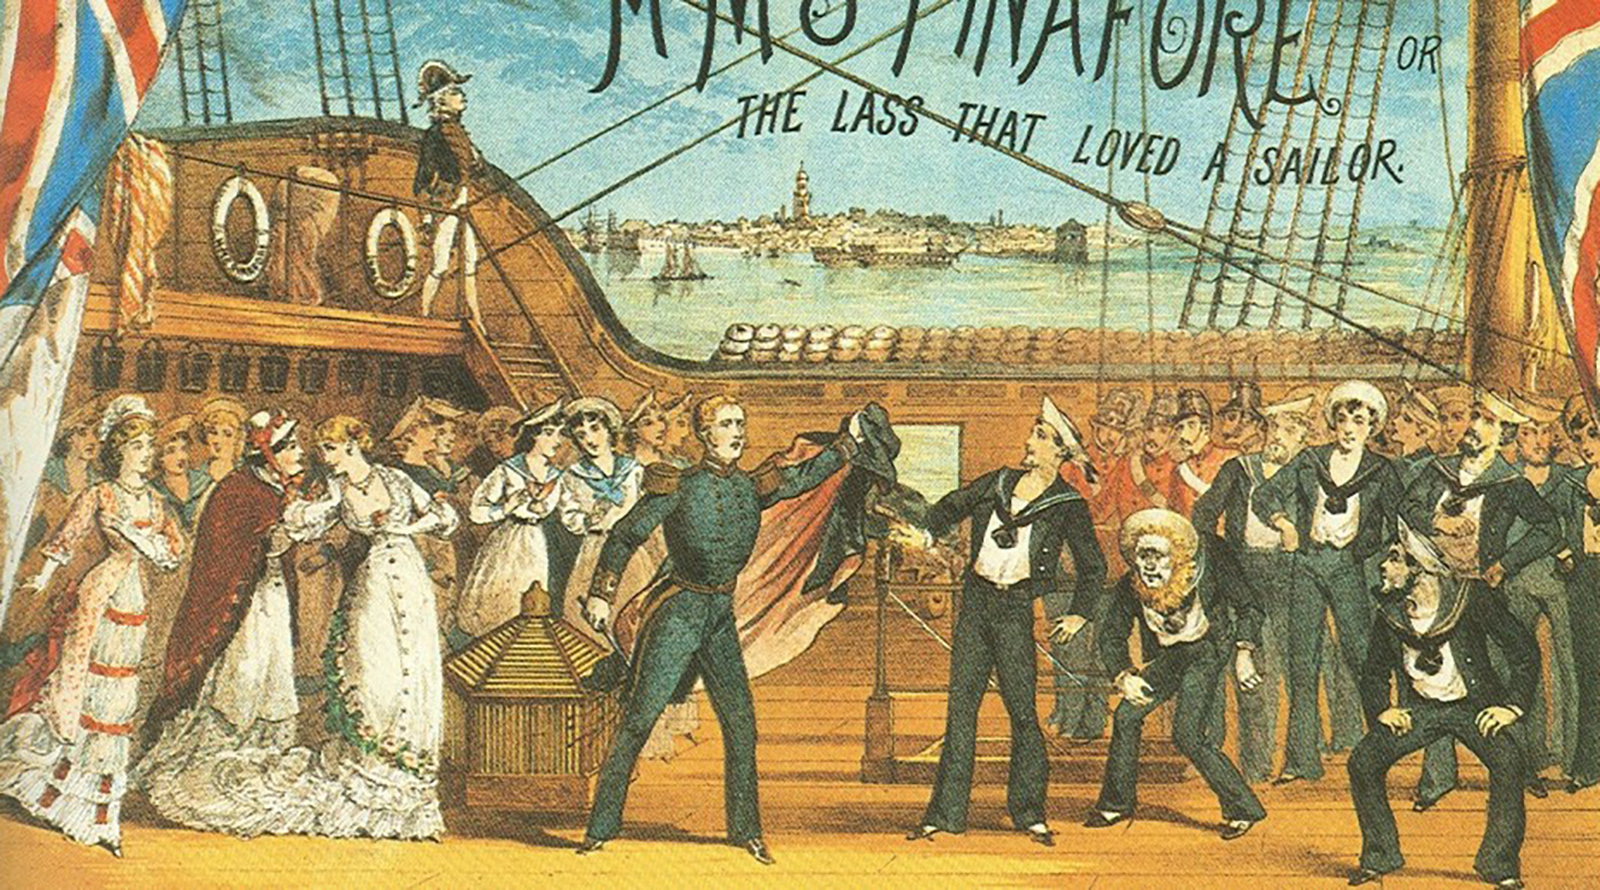 The Musical Comedies of Gilbert & Sullivan course